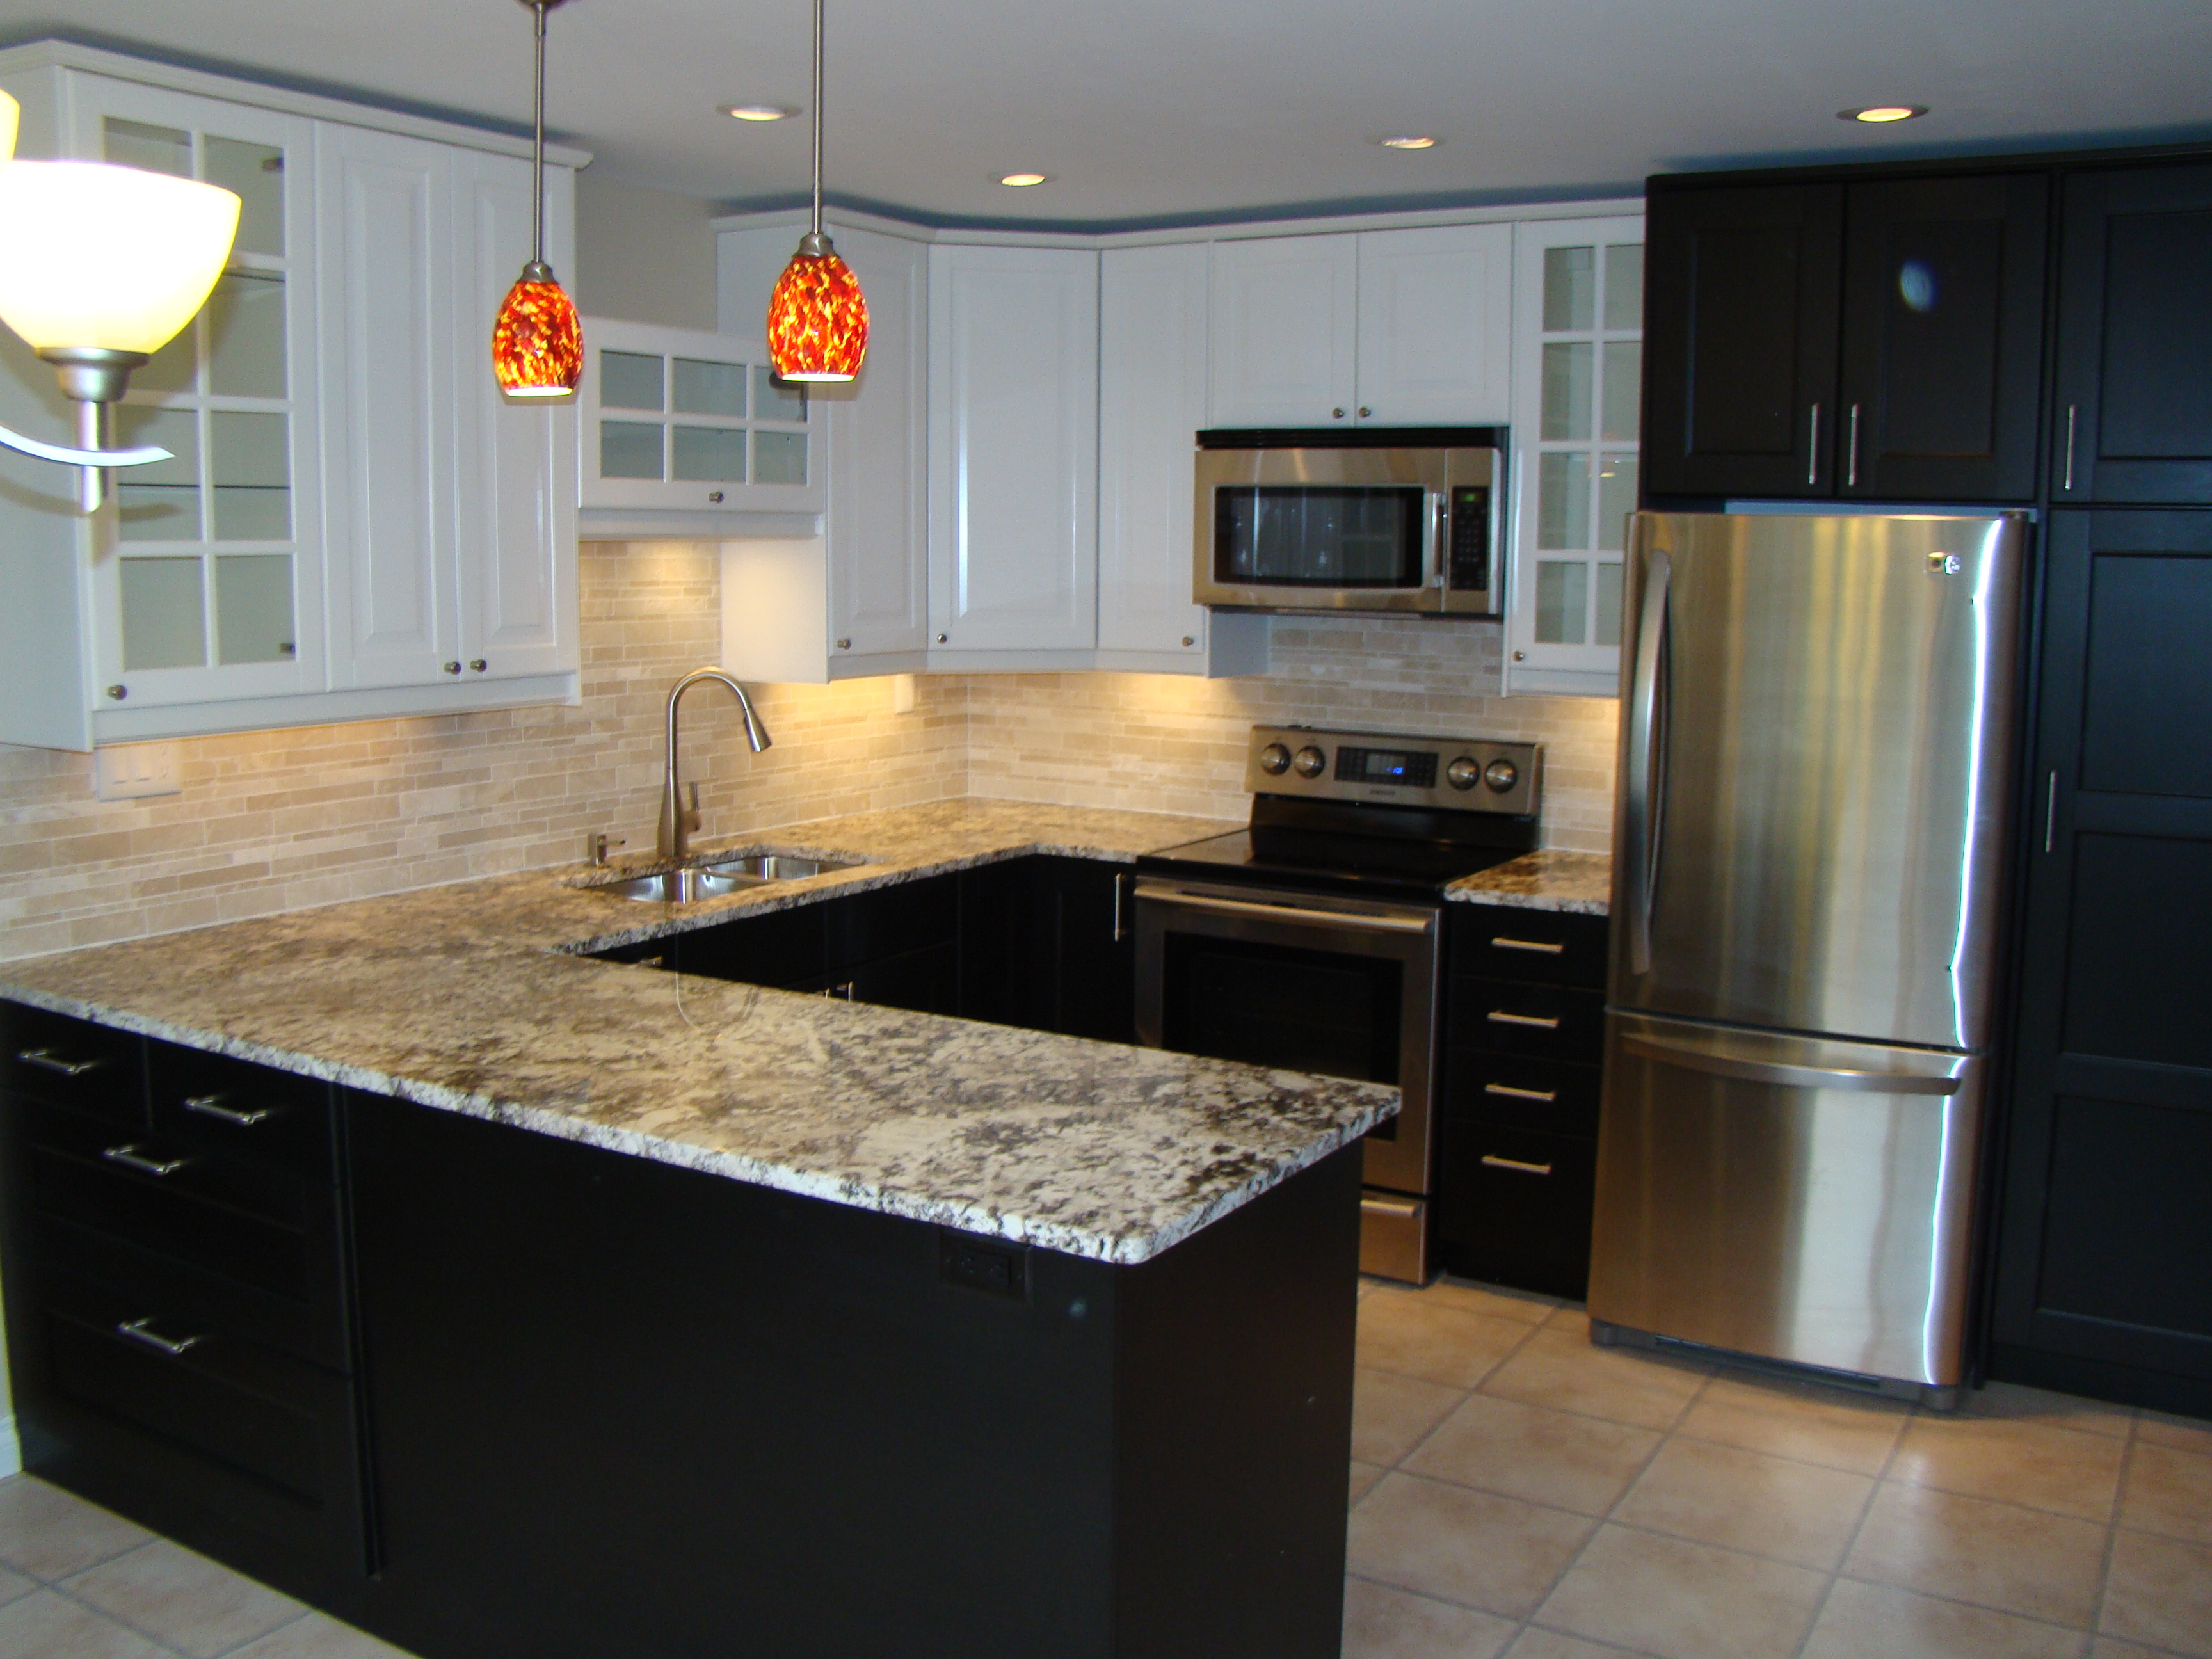 Common kitchen design mistakes: overlooking fillers and panels on Kitchen  id=37606